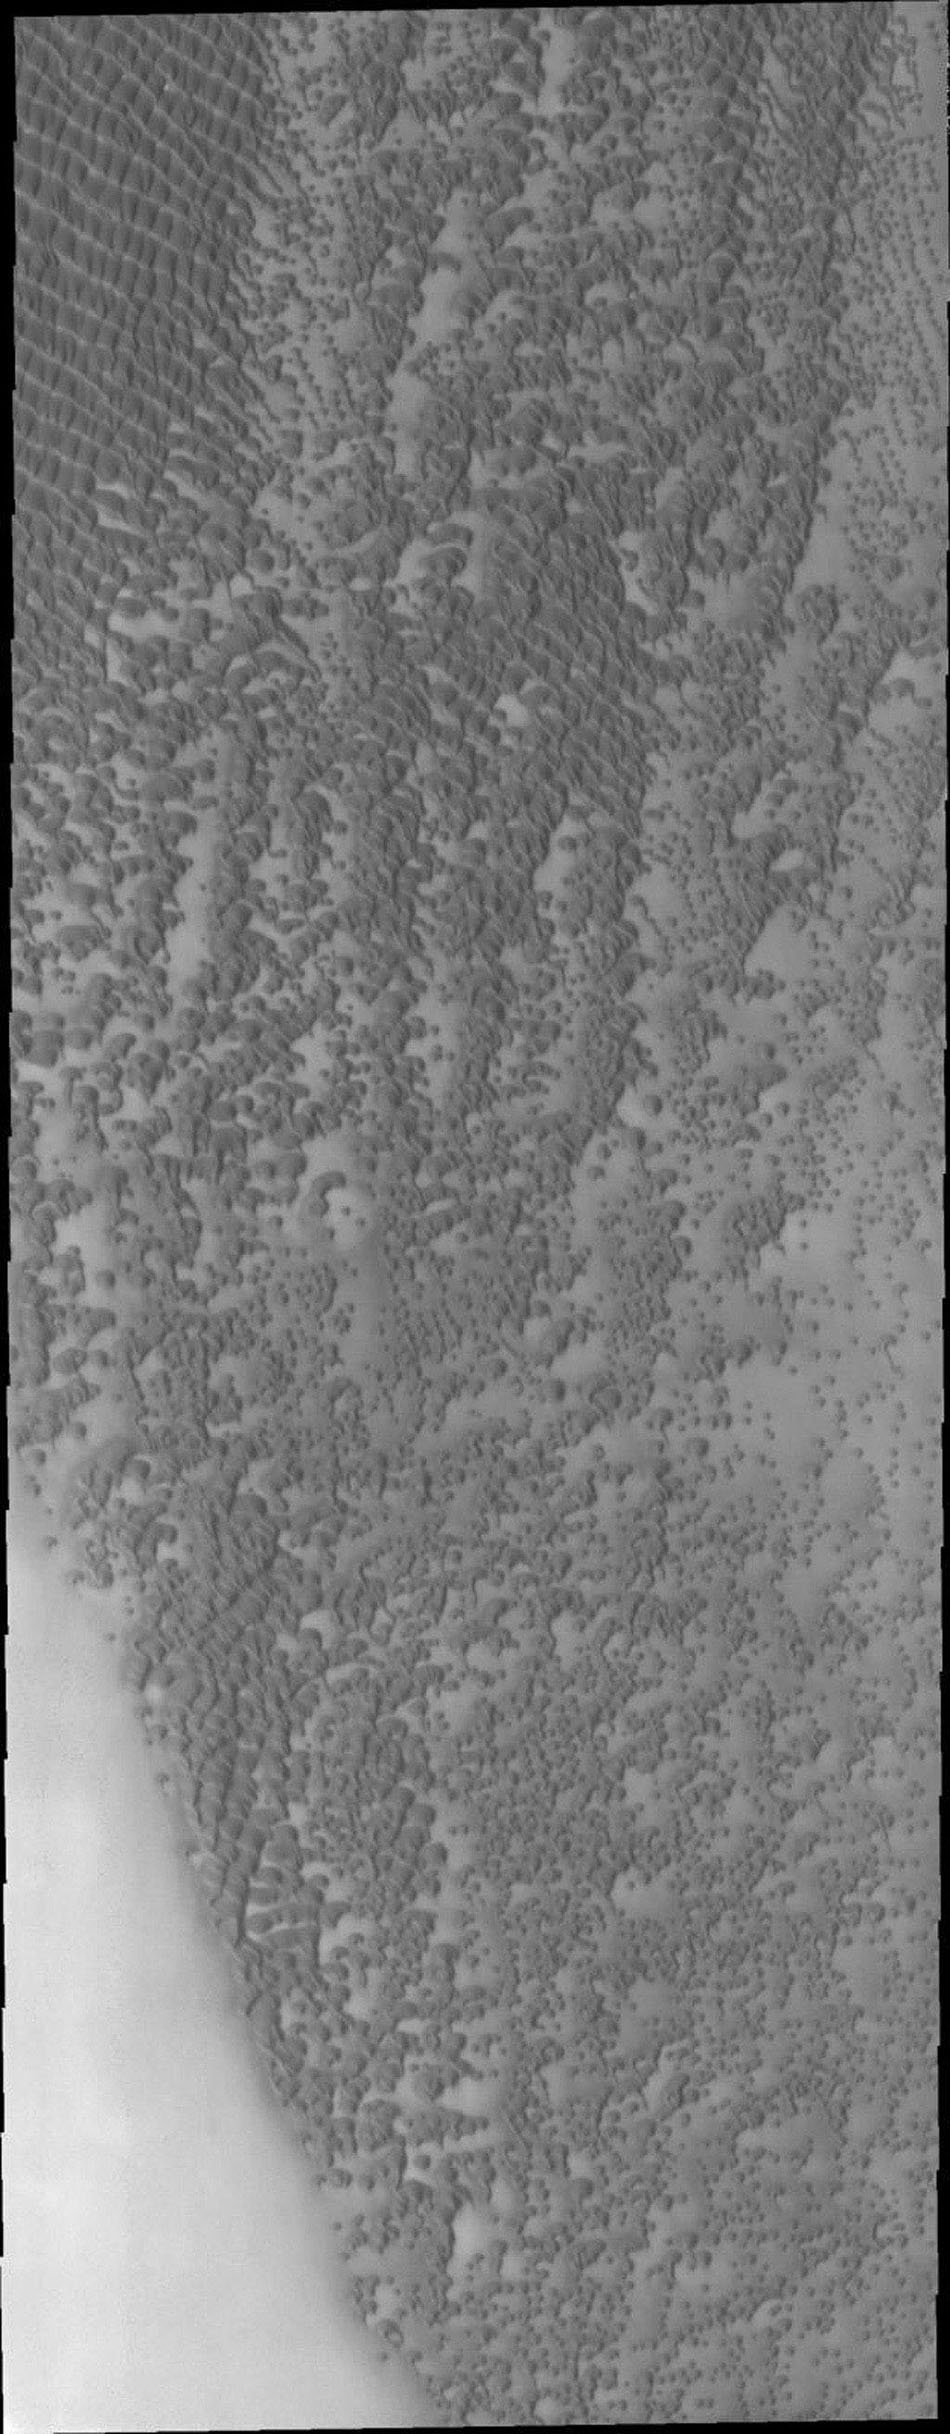 This image from NASA's Mars Odyssey shows a small part of Mars' north polar sand sea, or erg. In this region individual dunes are coalescing into large dune groups.